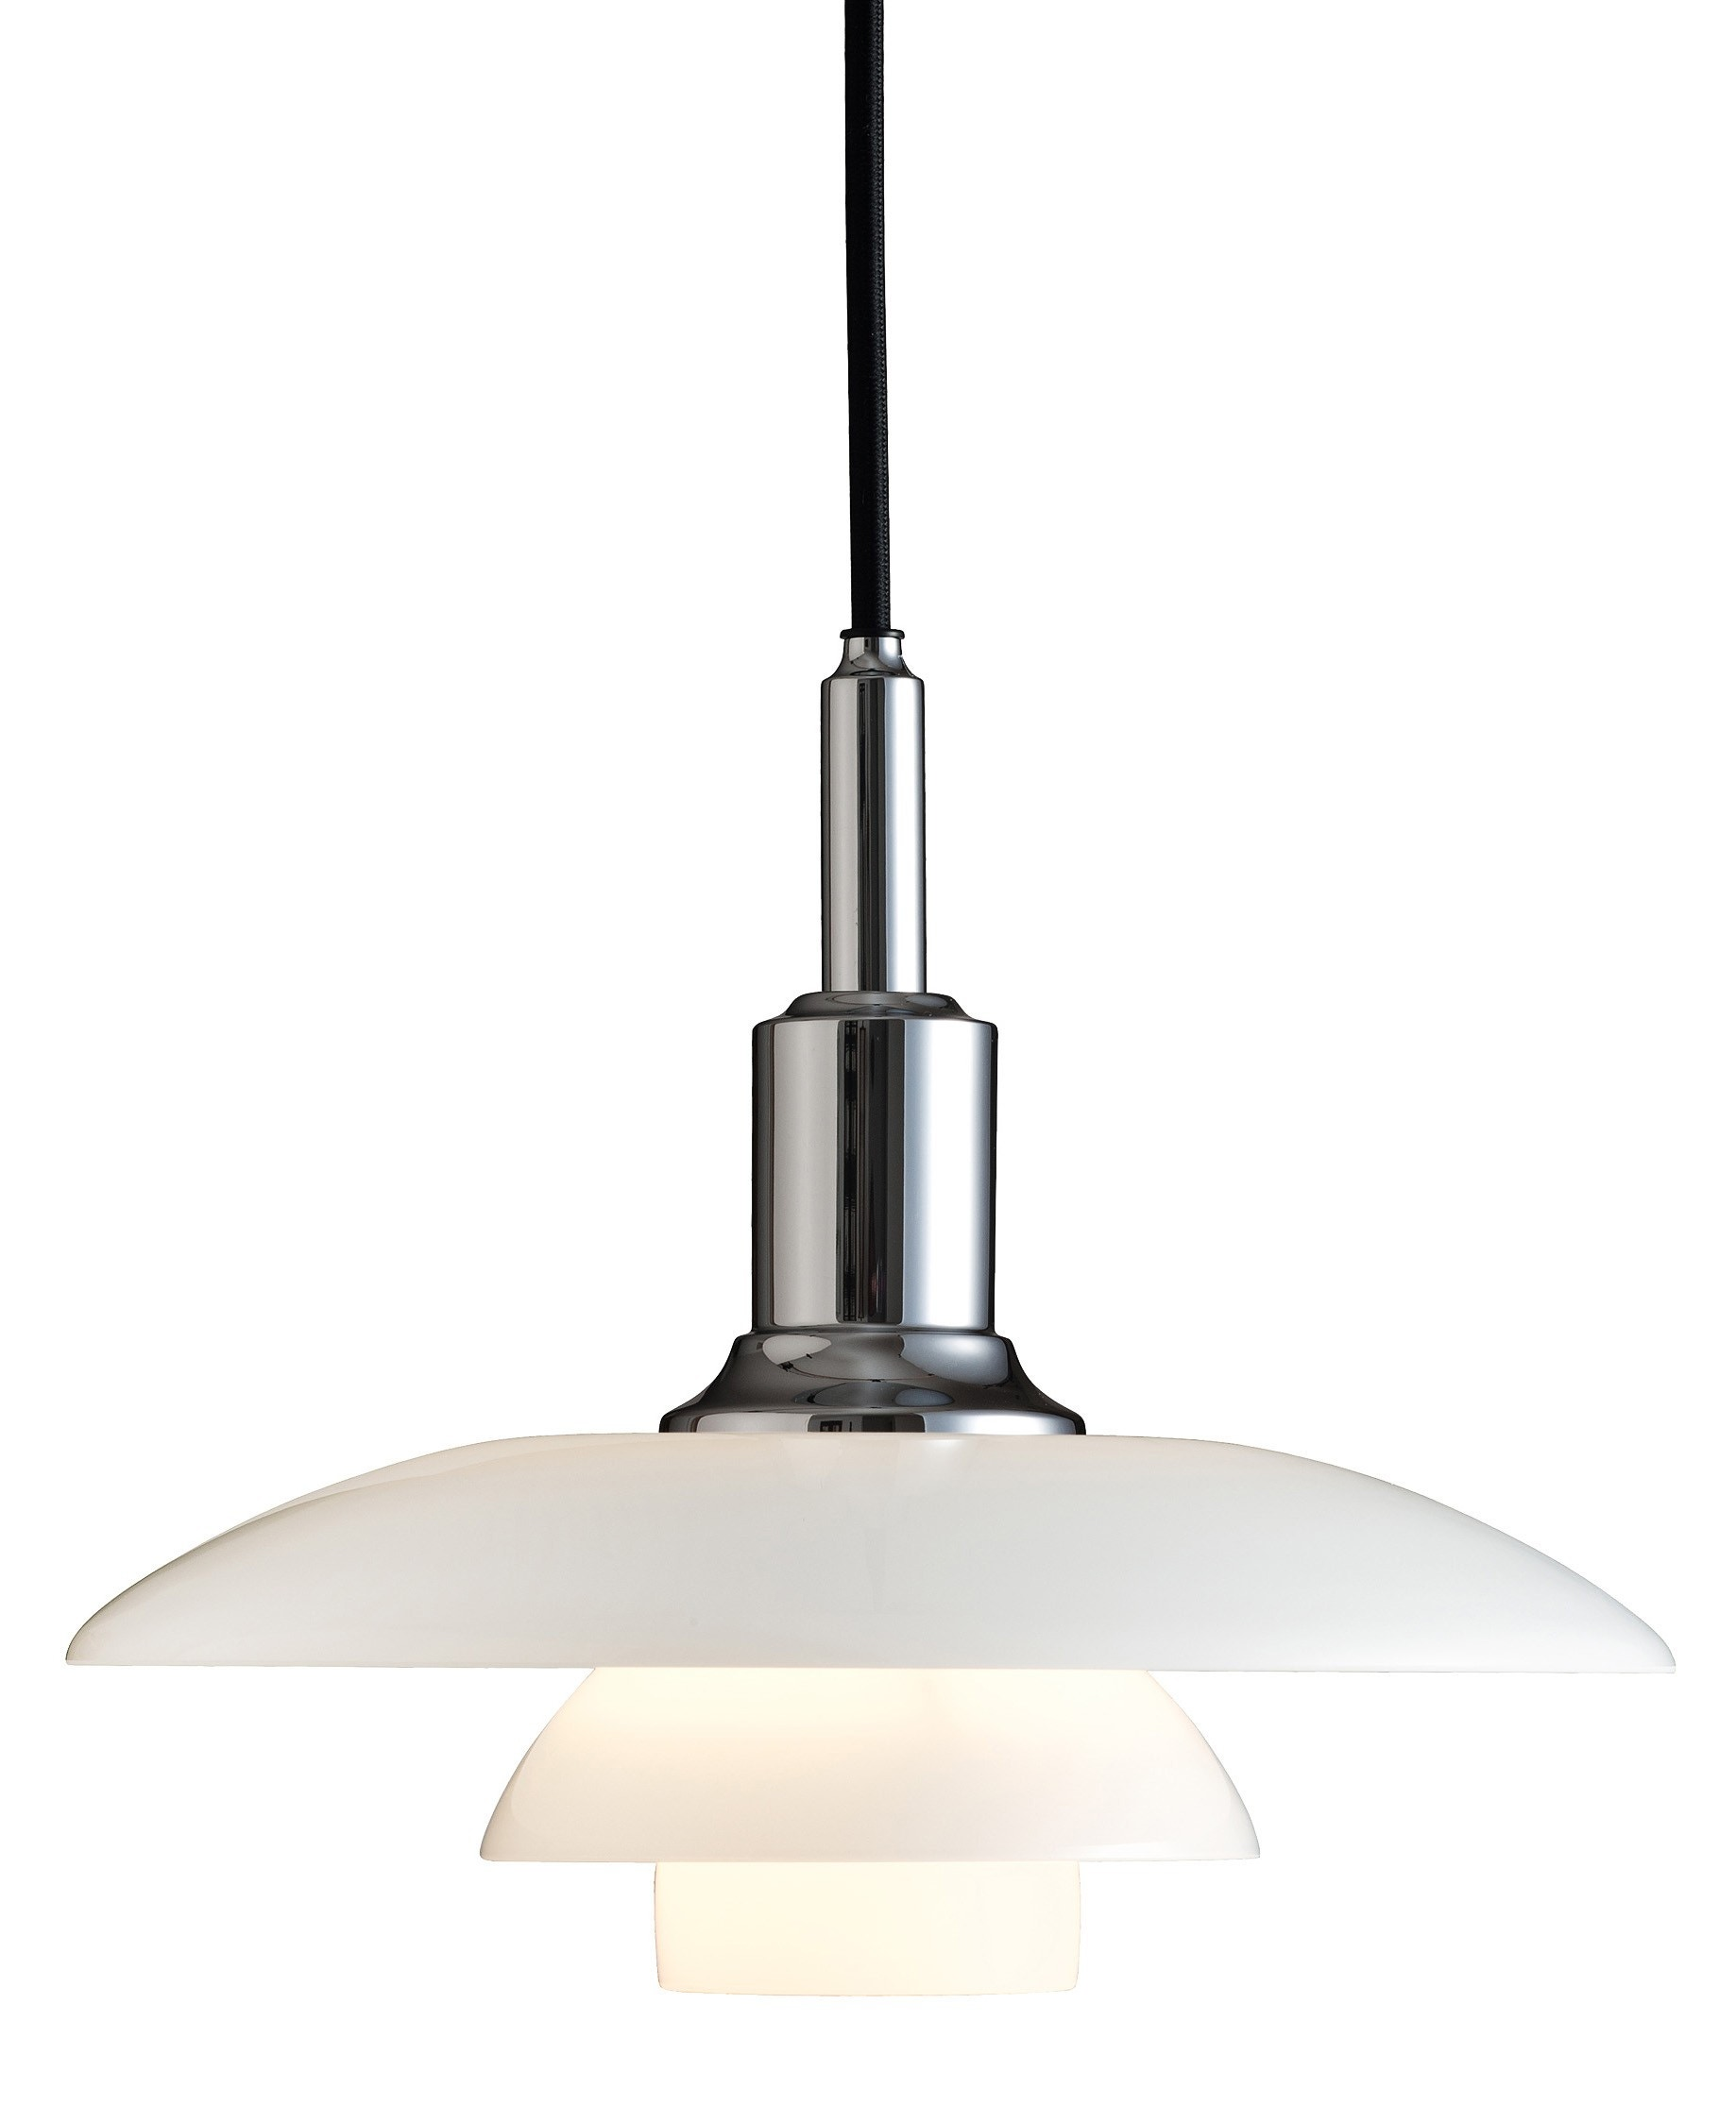 Ph Lighting Throughout Louis Poulsen Ph 32 Pendant Lamp Gr Shop Canada